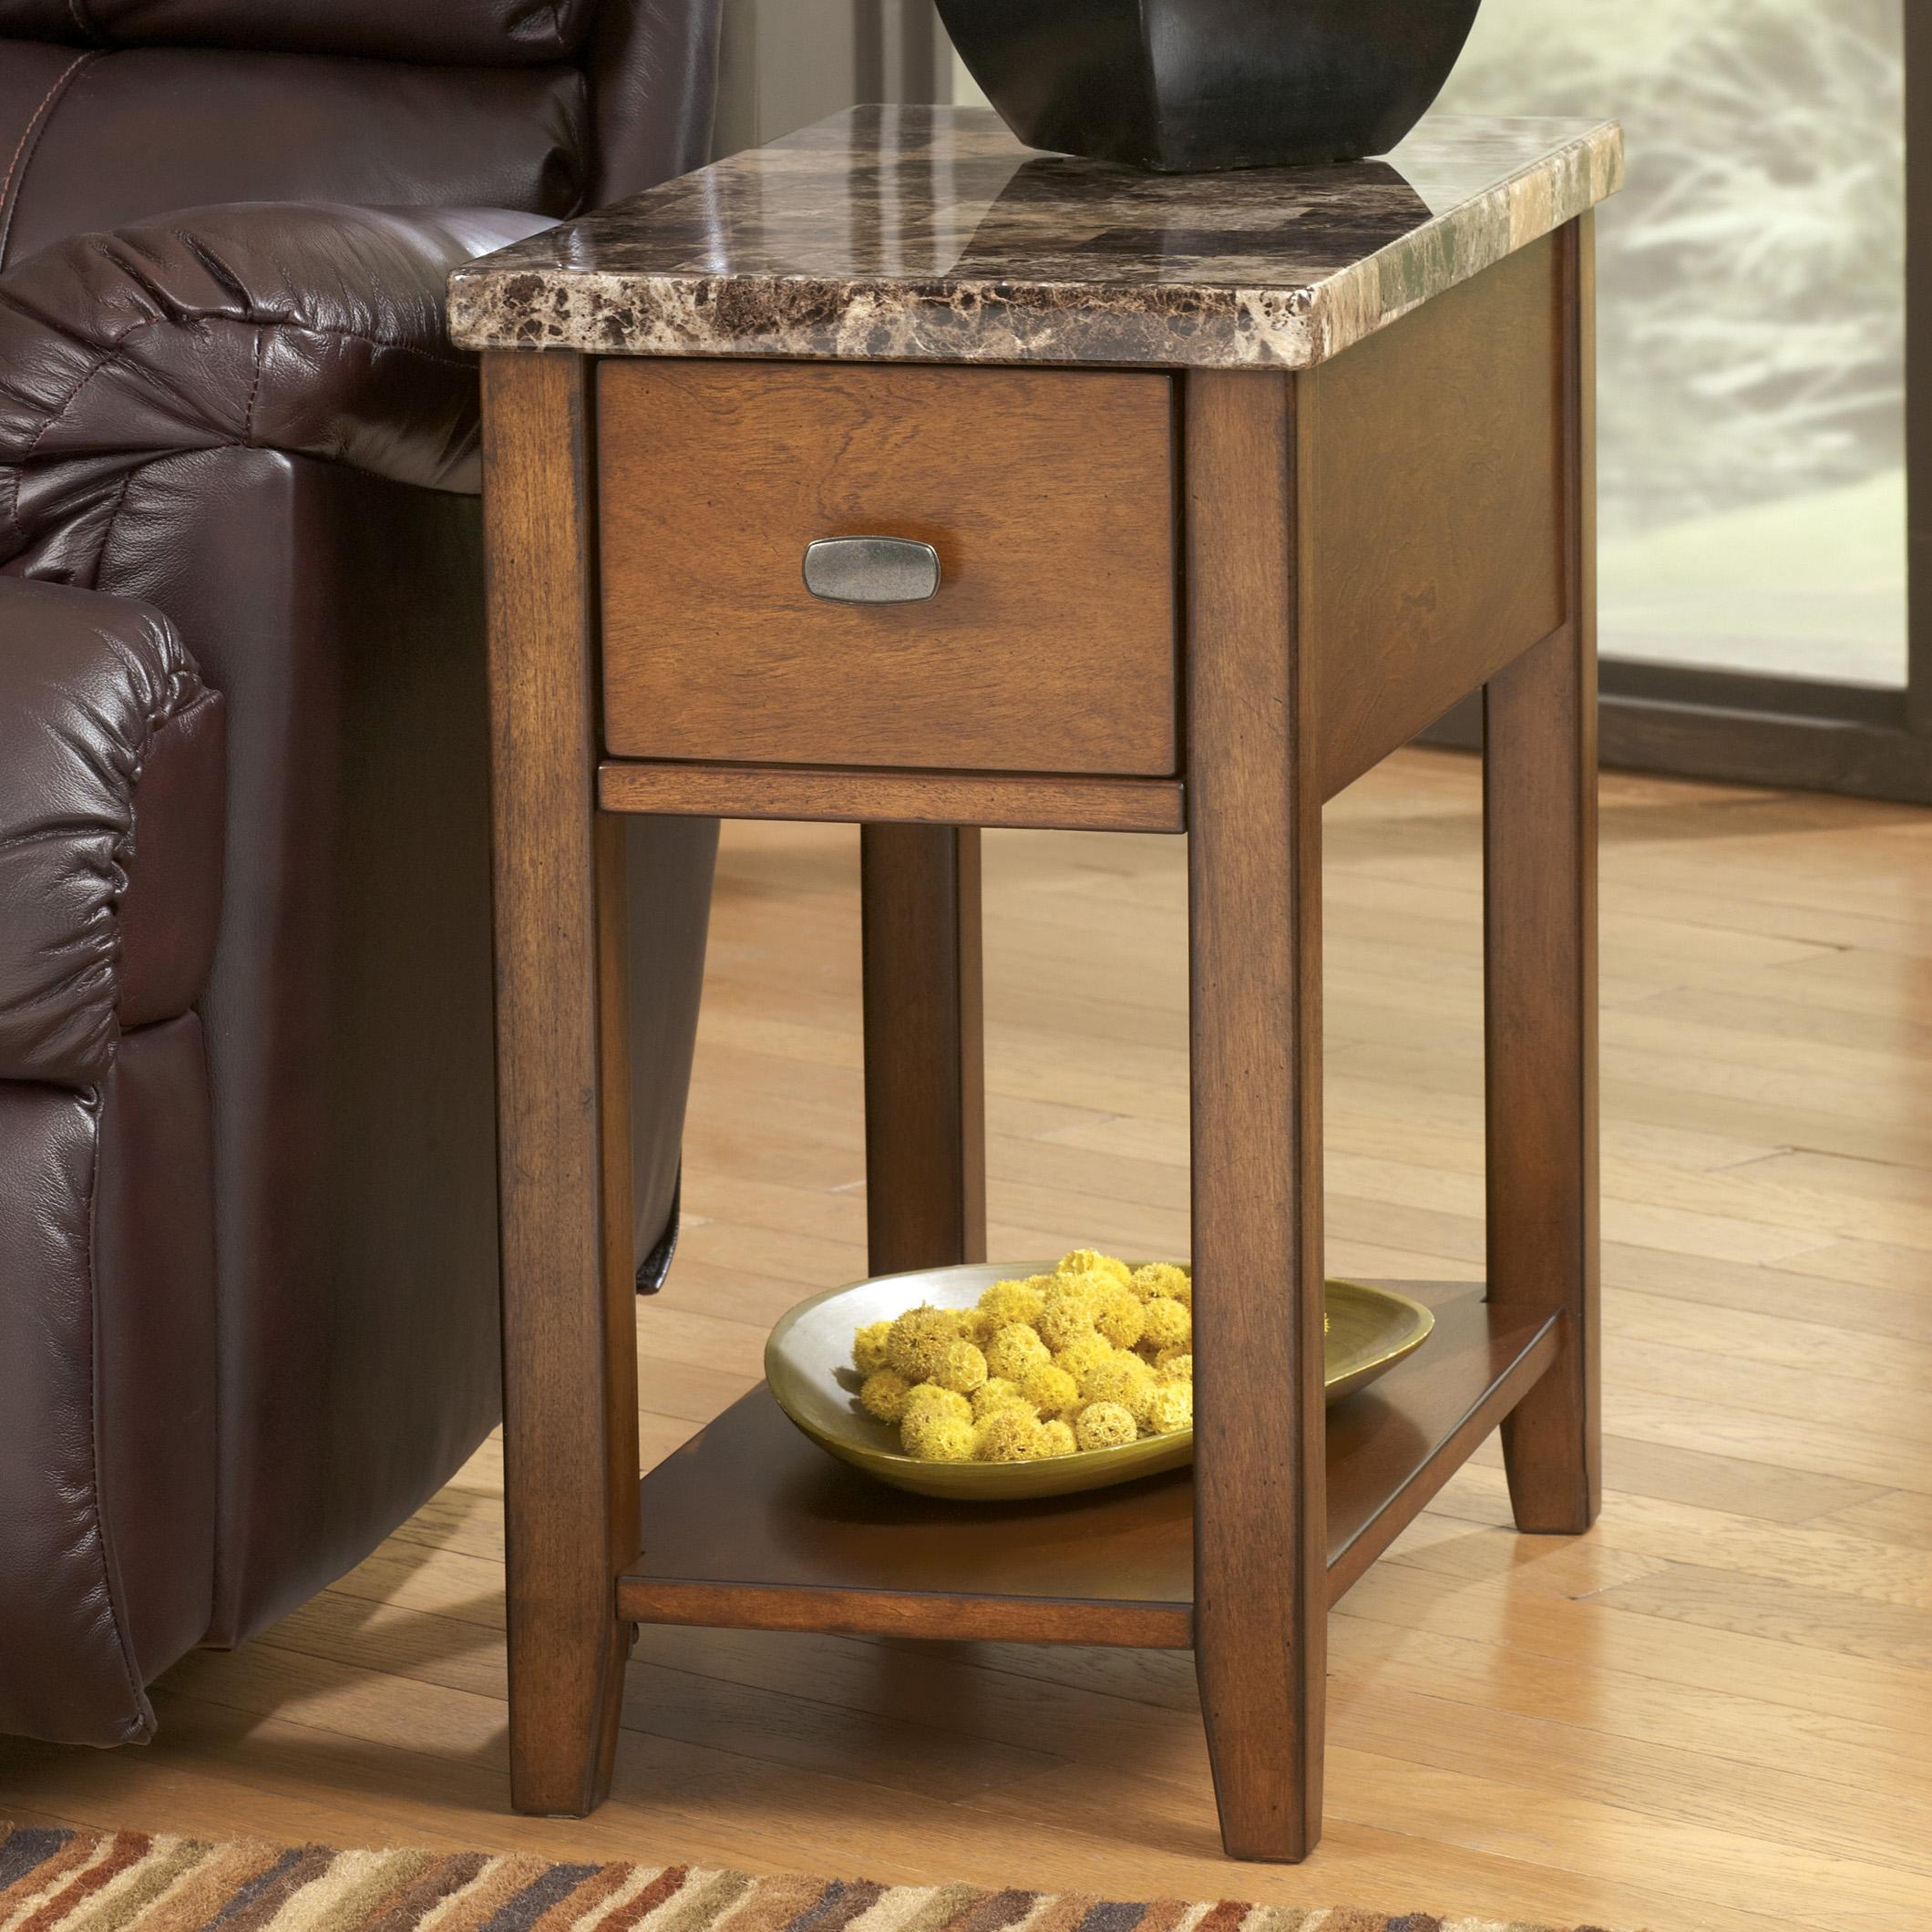 Signature design by ashley breegin t007 158 medium brown for Chairside table